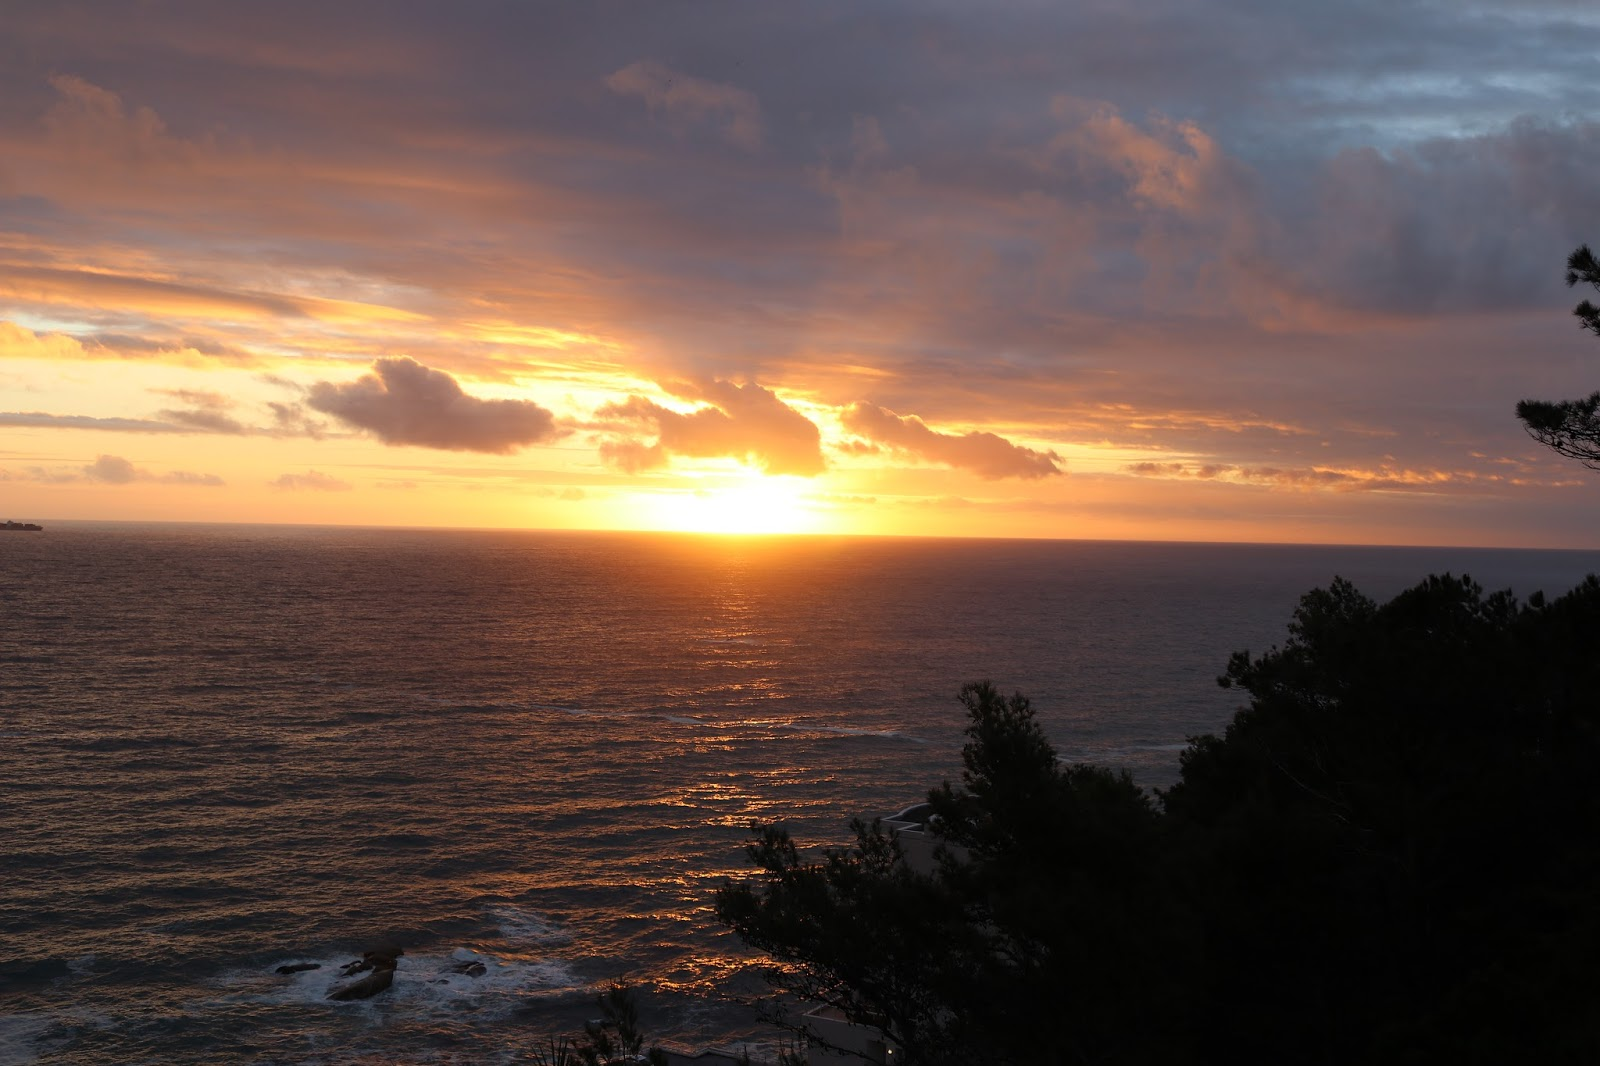 Sunset from Cape View Clifton, Cape Town, South Africa